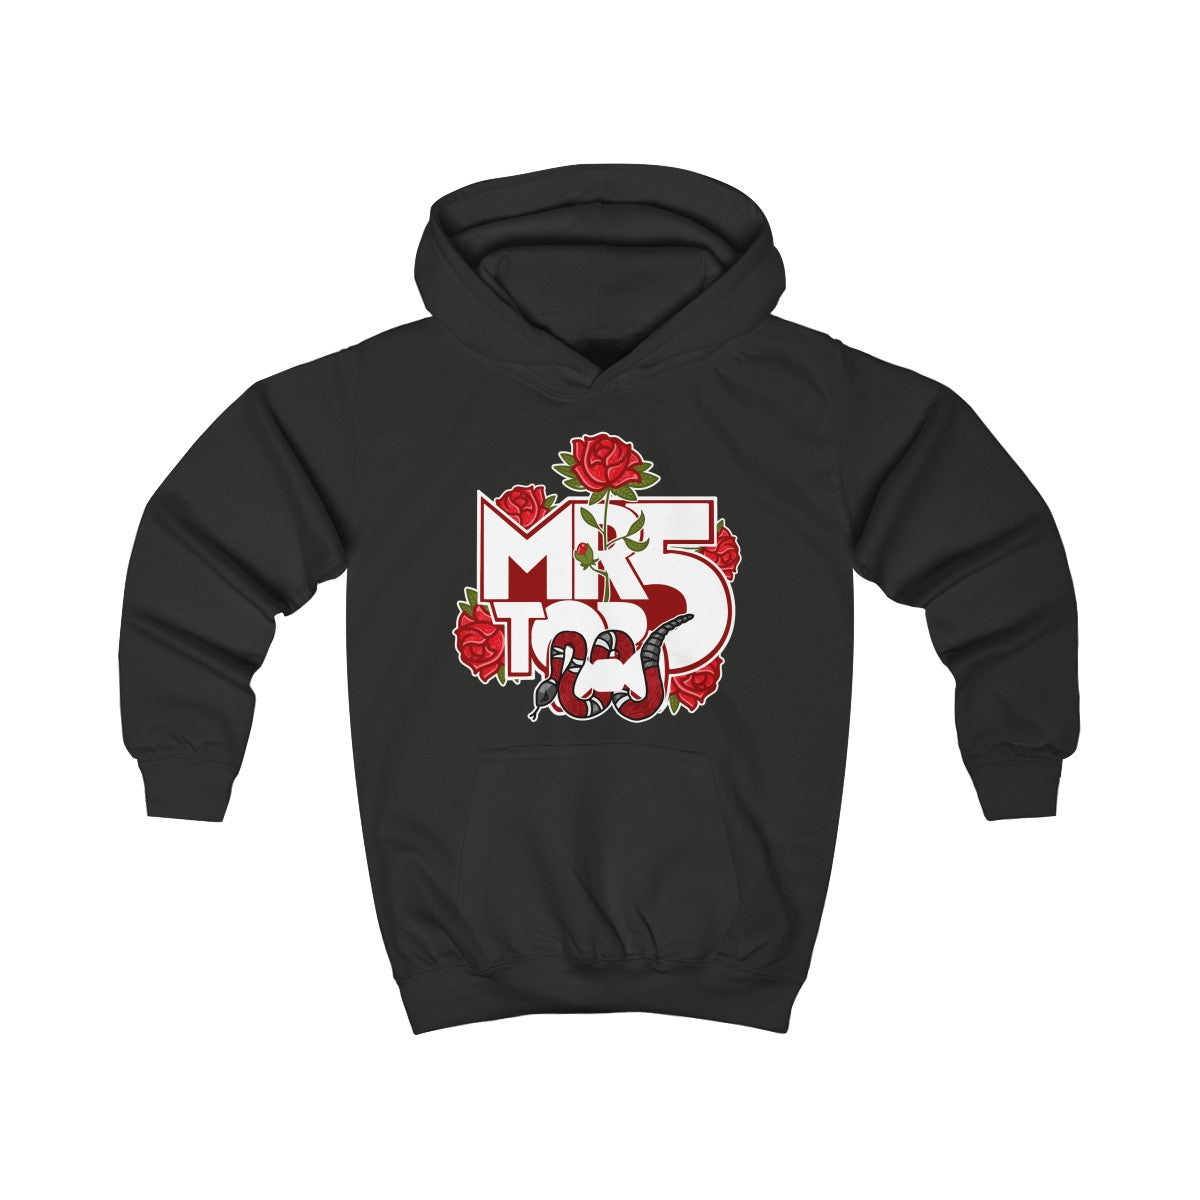 MrTop5 Loyalty Youth Hoodie